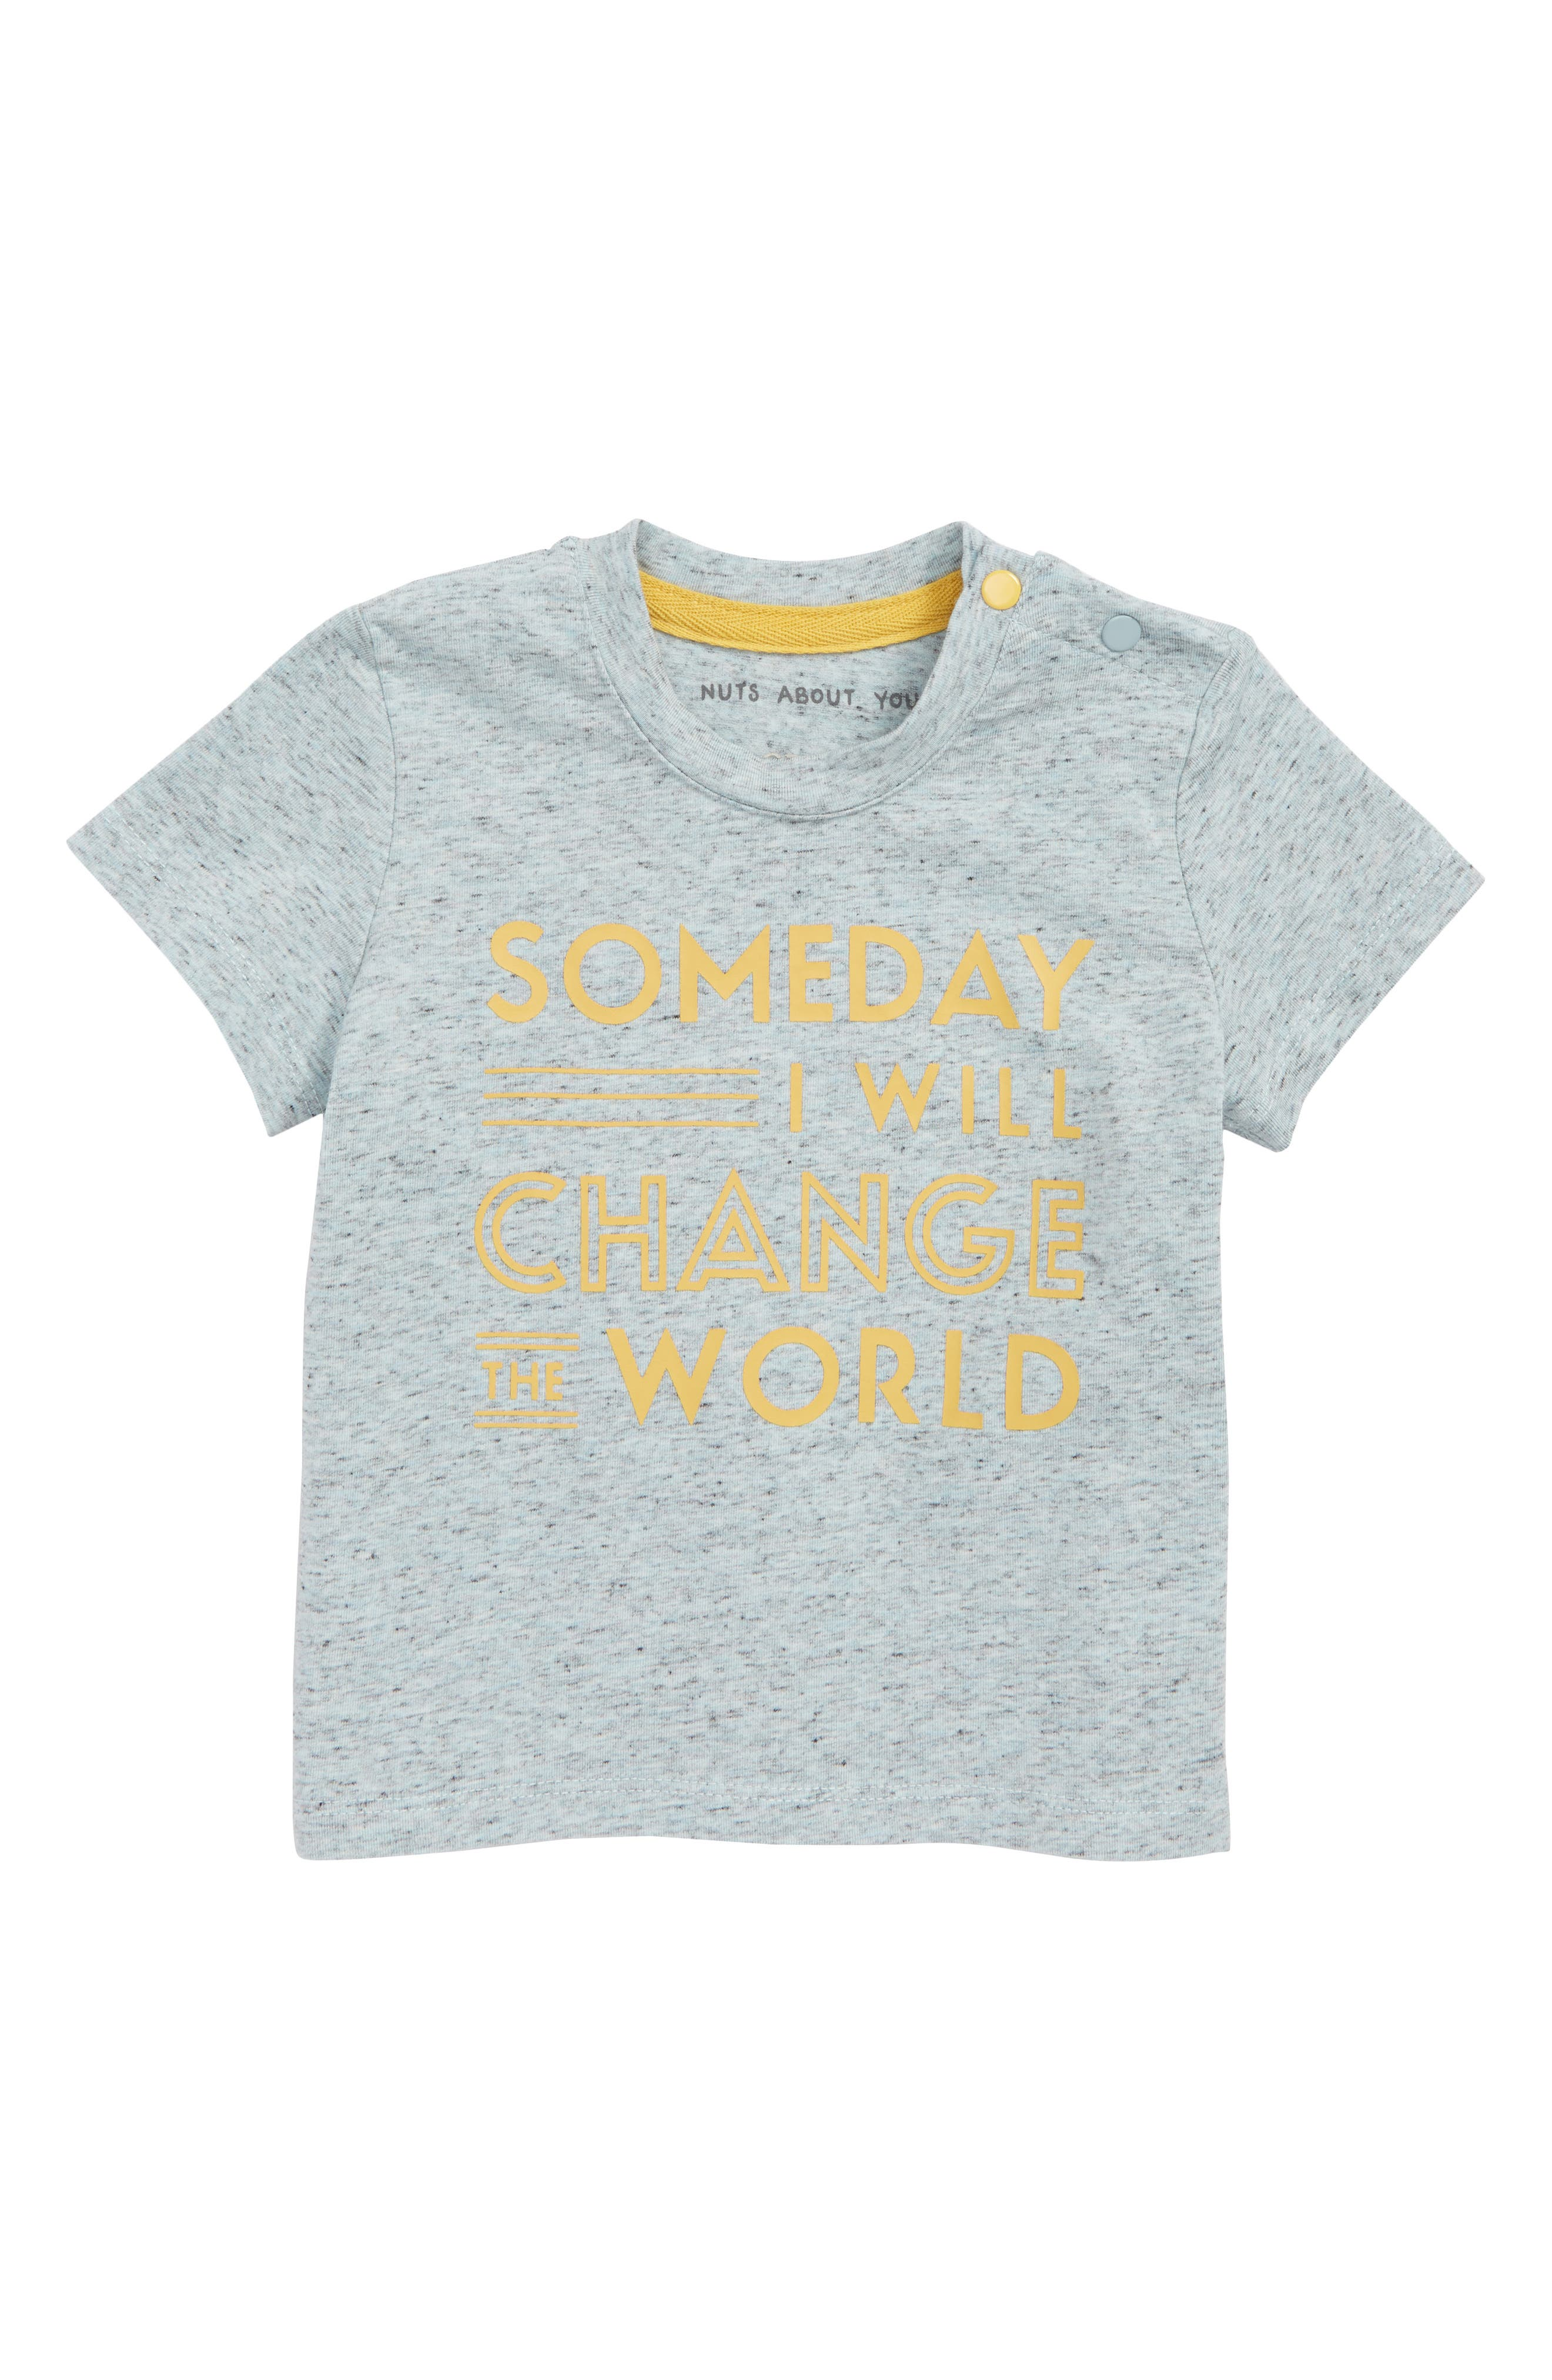 Someday I Will Change the World Tee,                             Main thumbnail 1, color,                             020